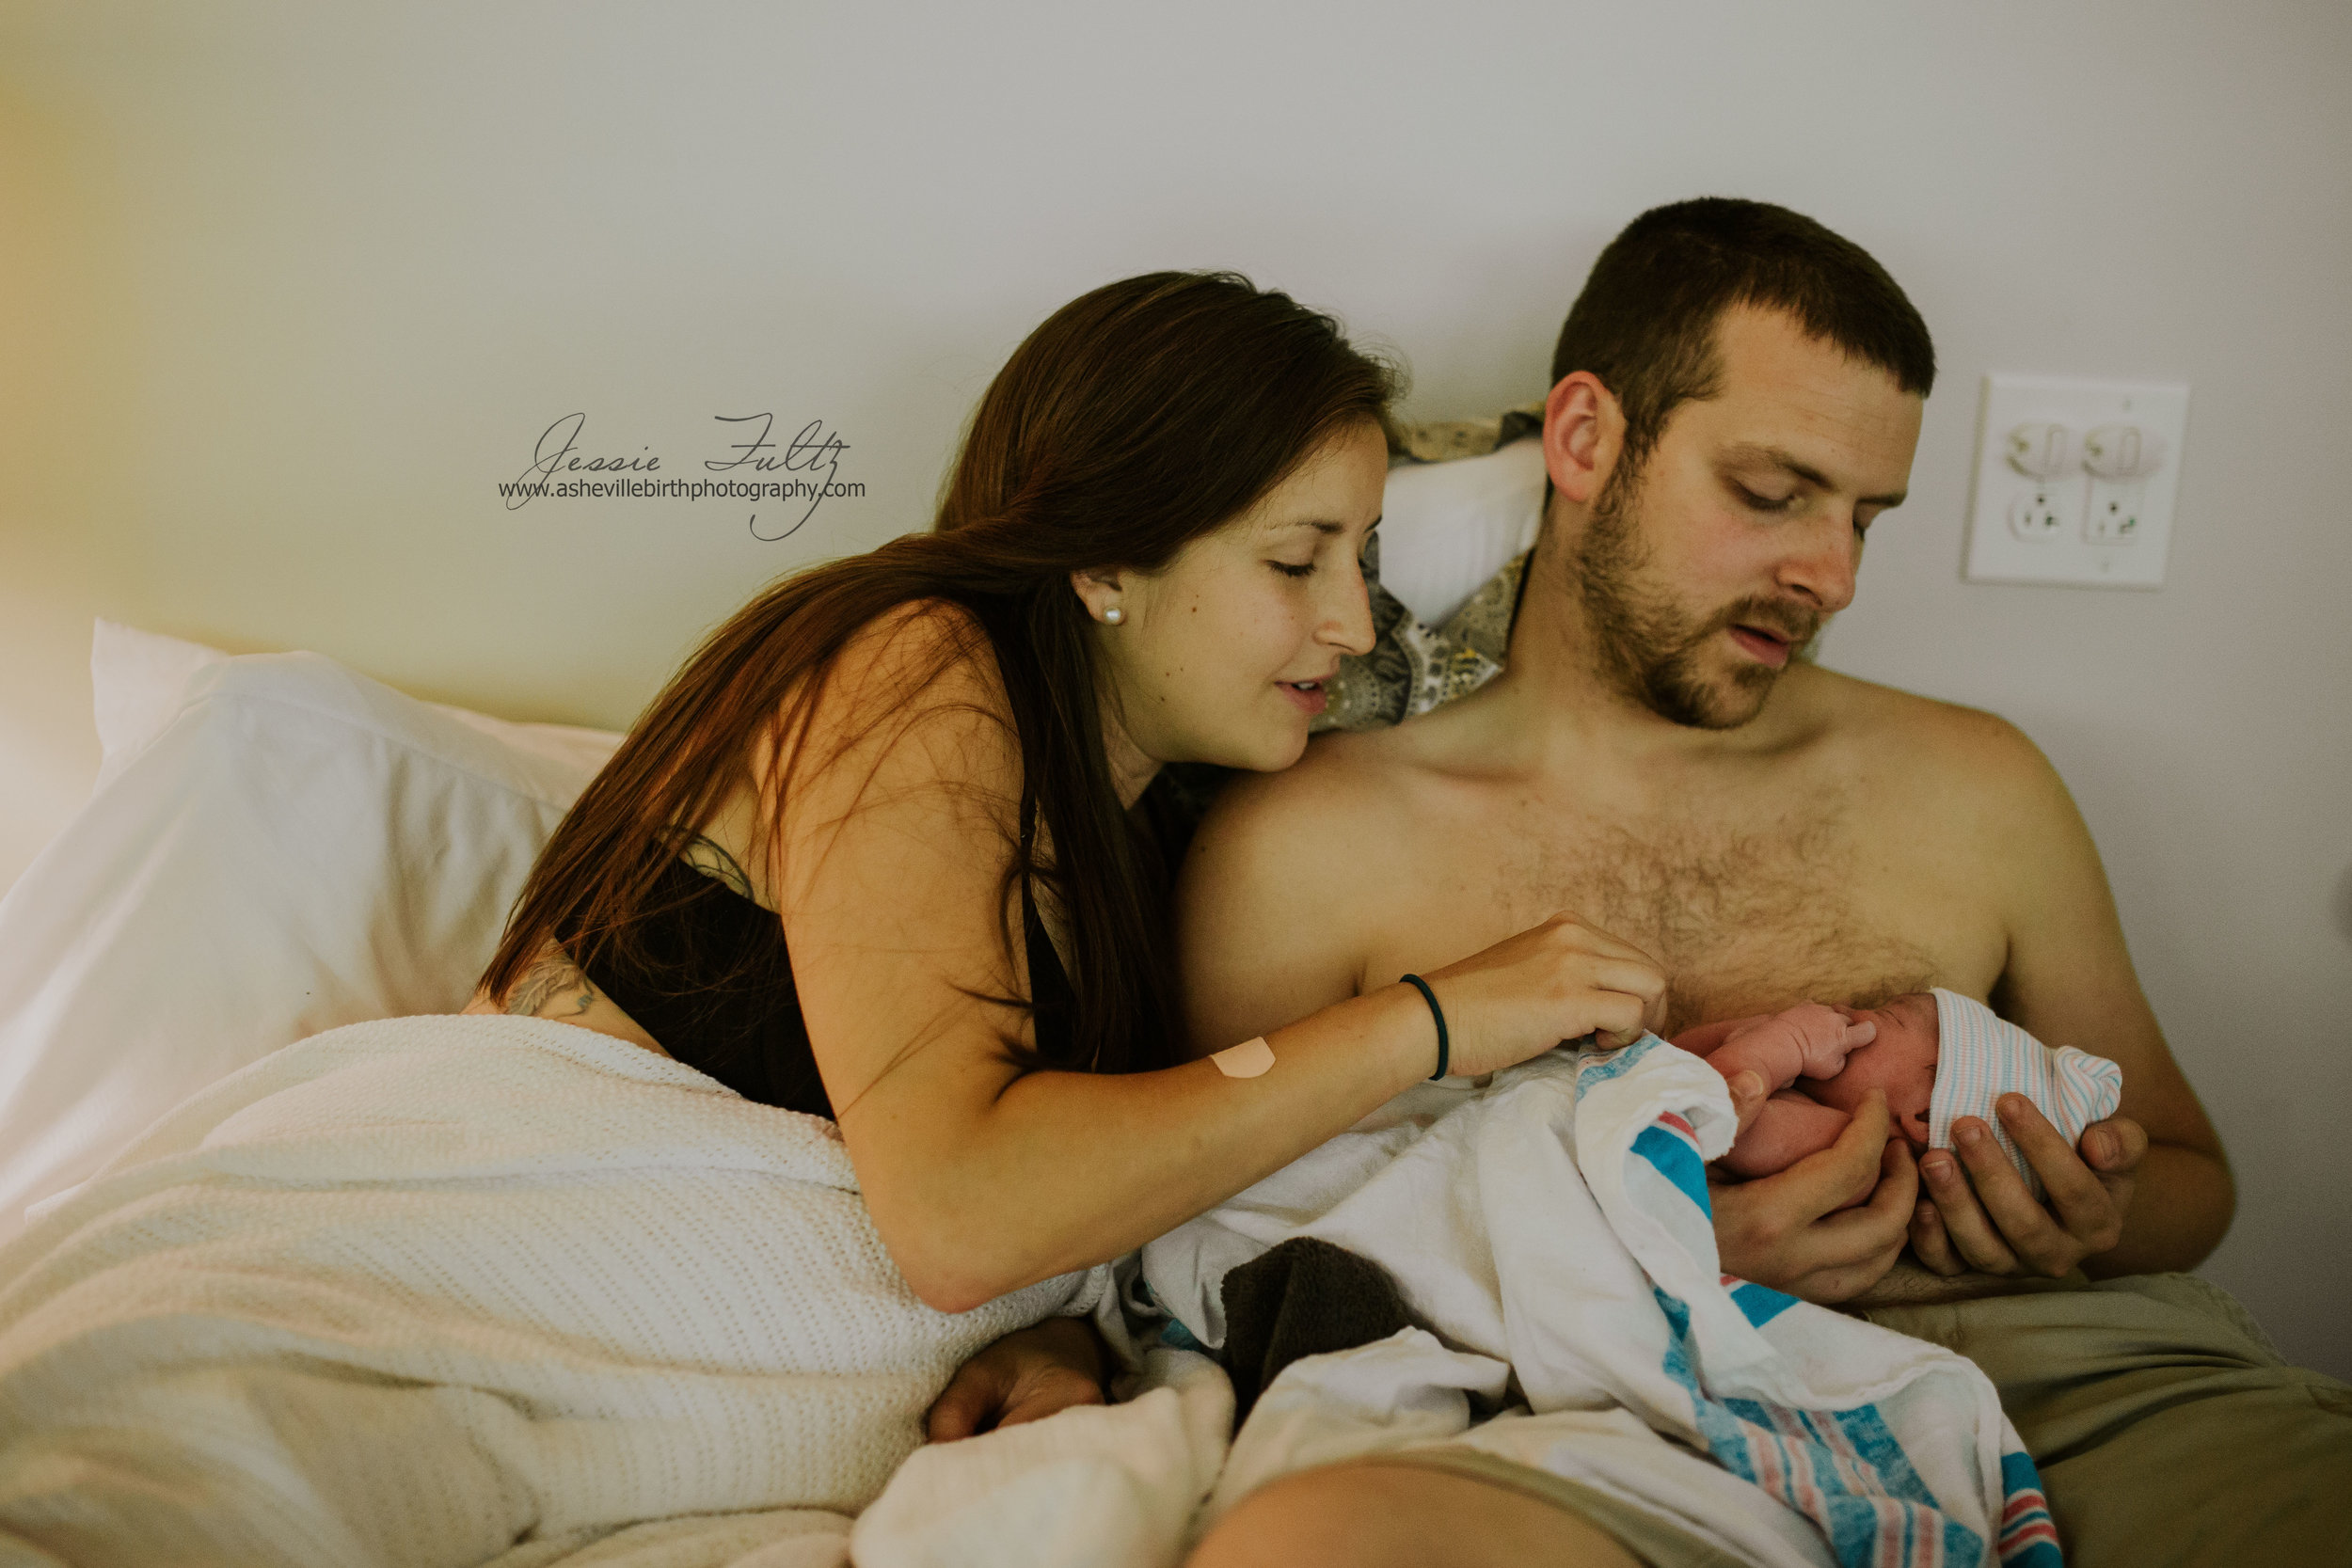 mom and dad sitting in bed with baby just after birth